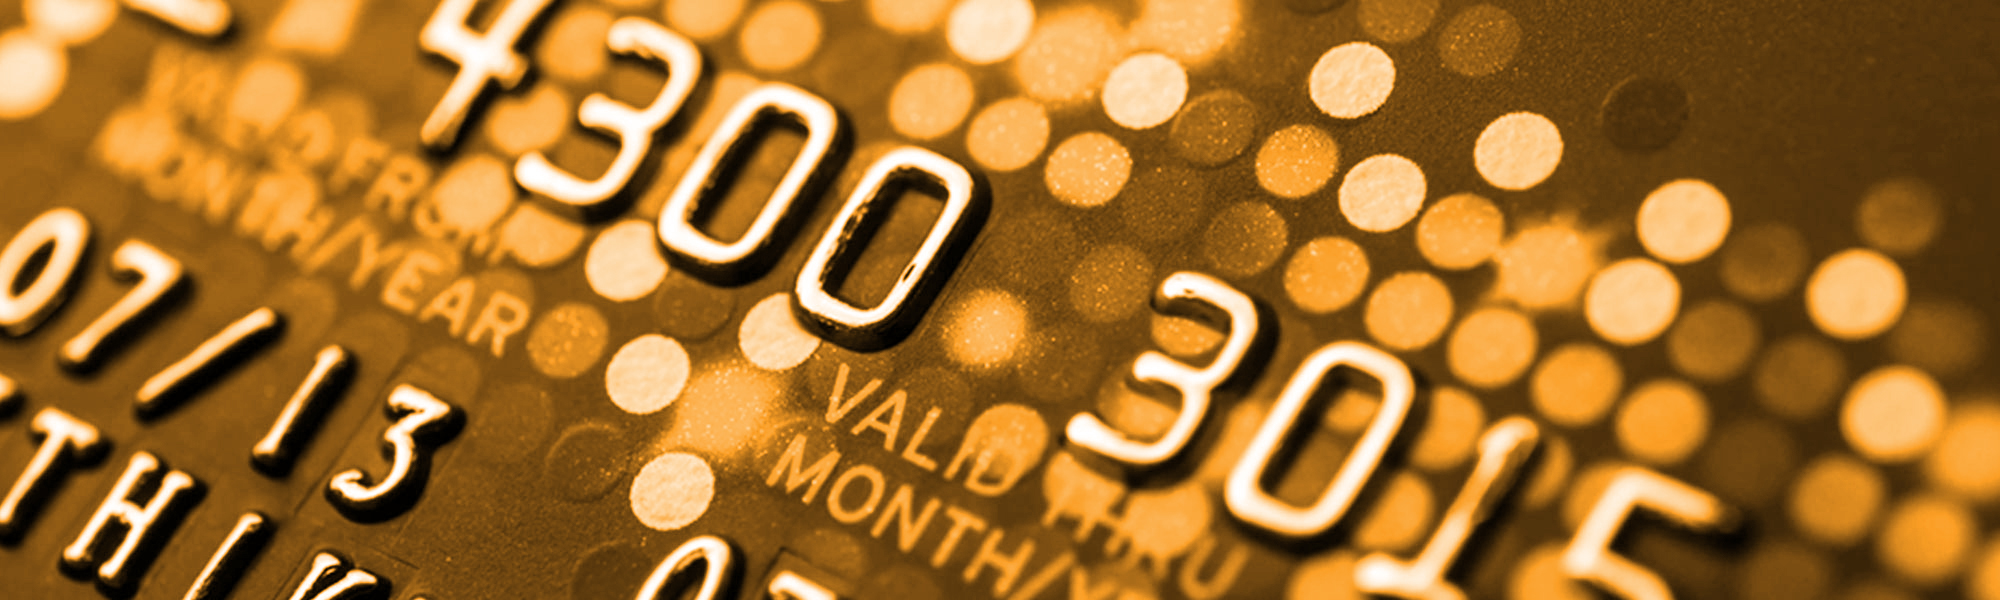 Credit risk credit card